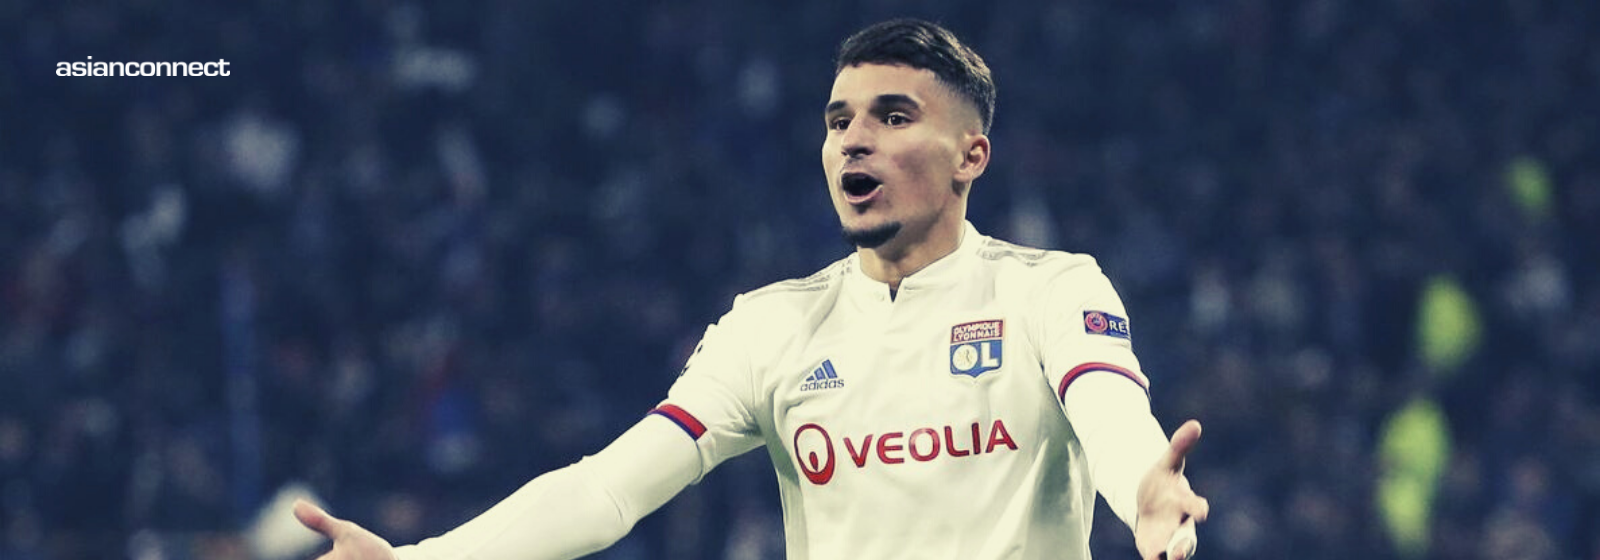 Asianconnect: Houssem Aouar